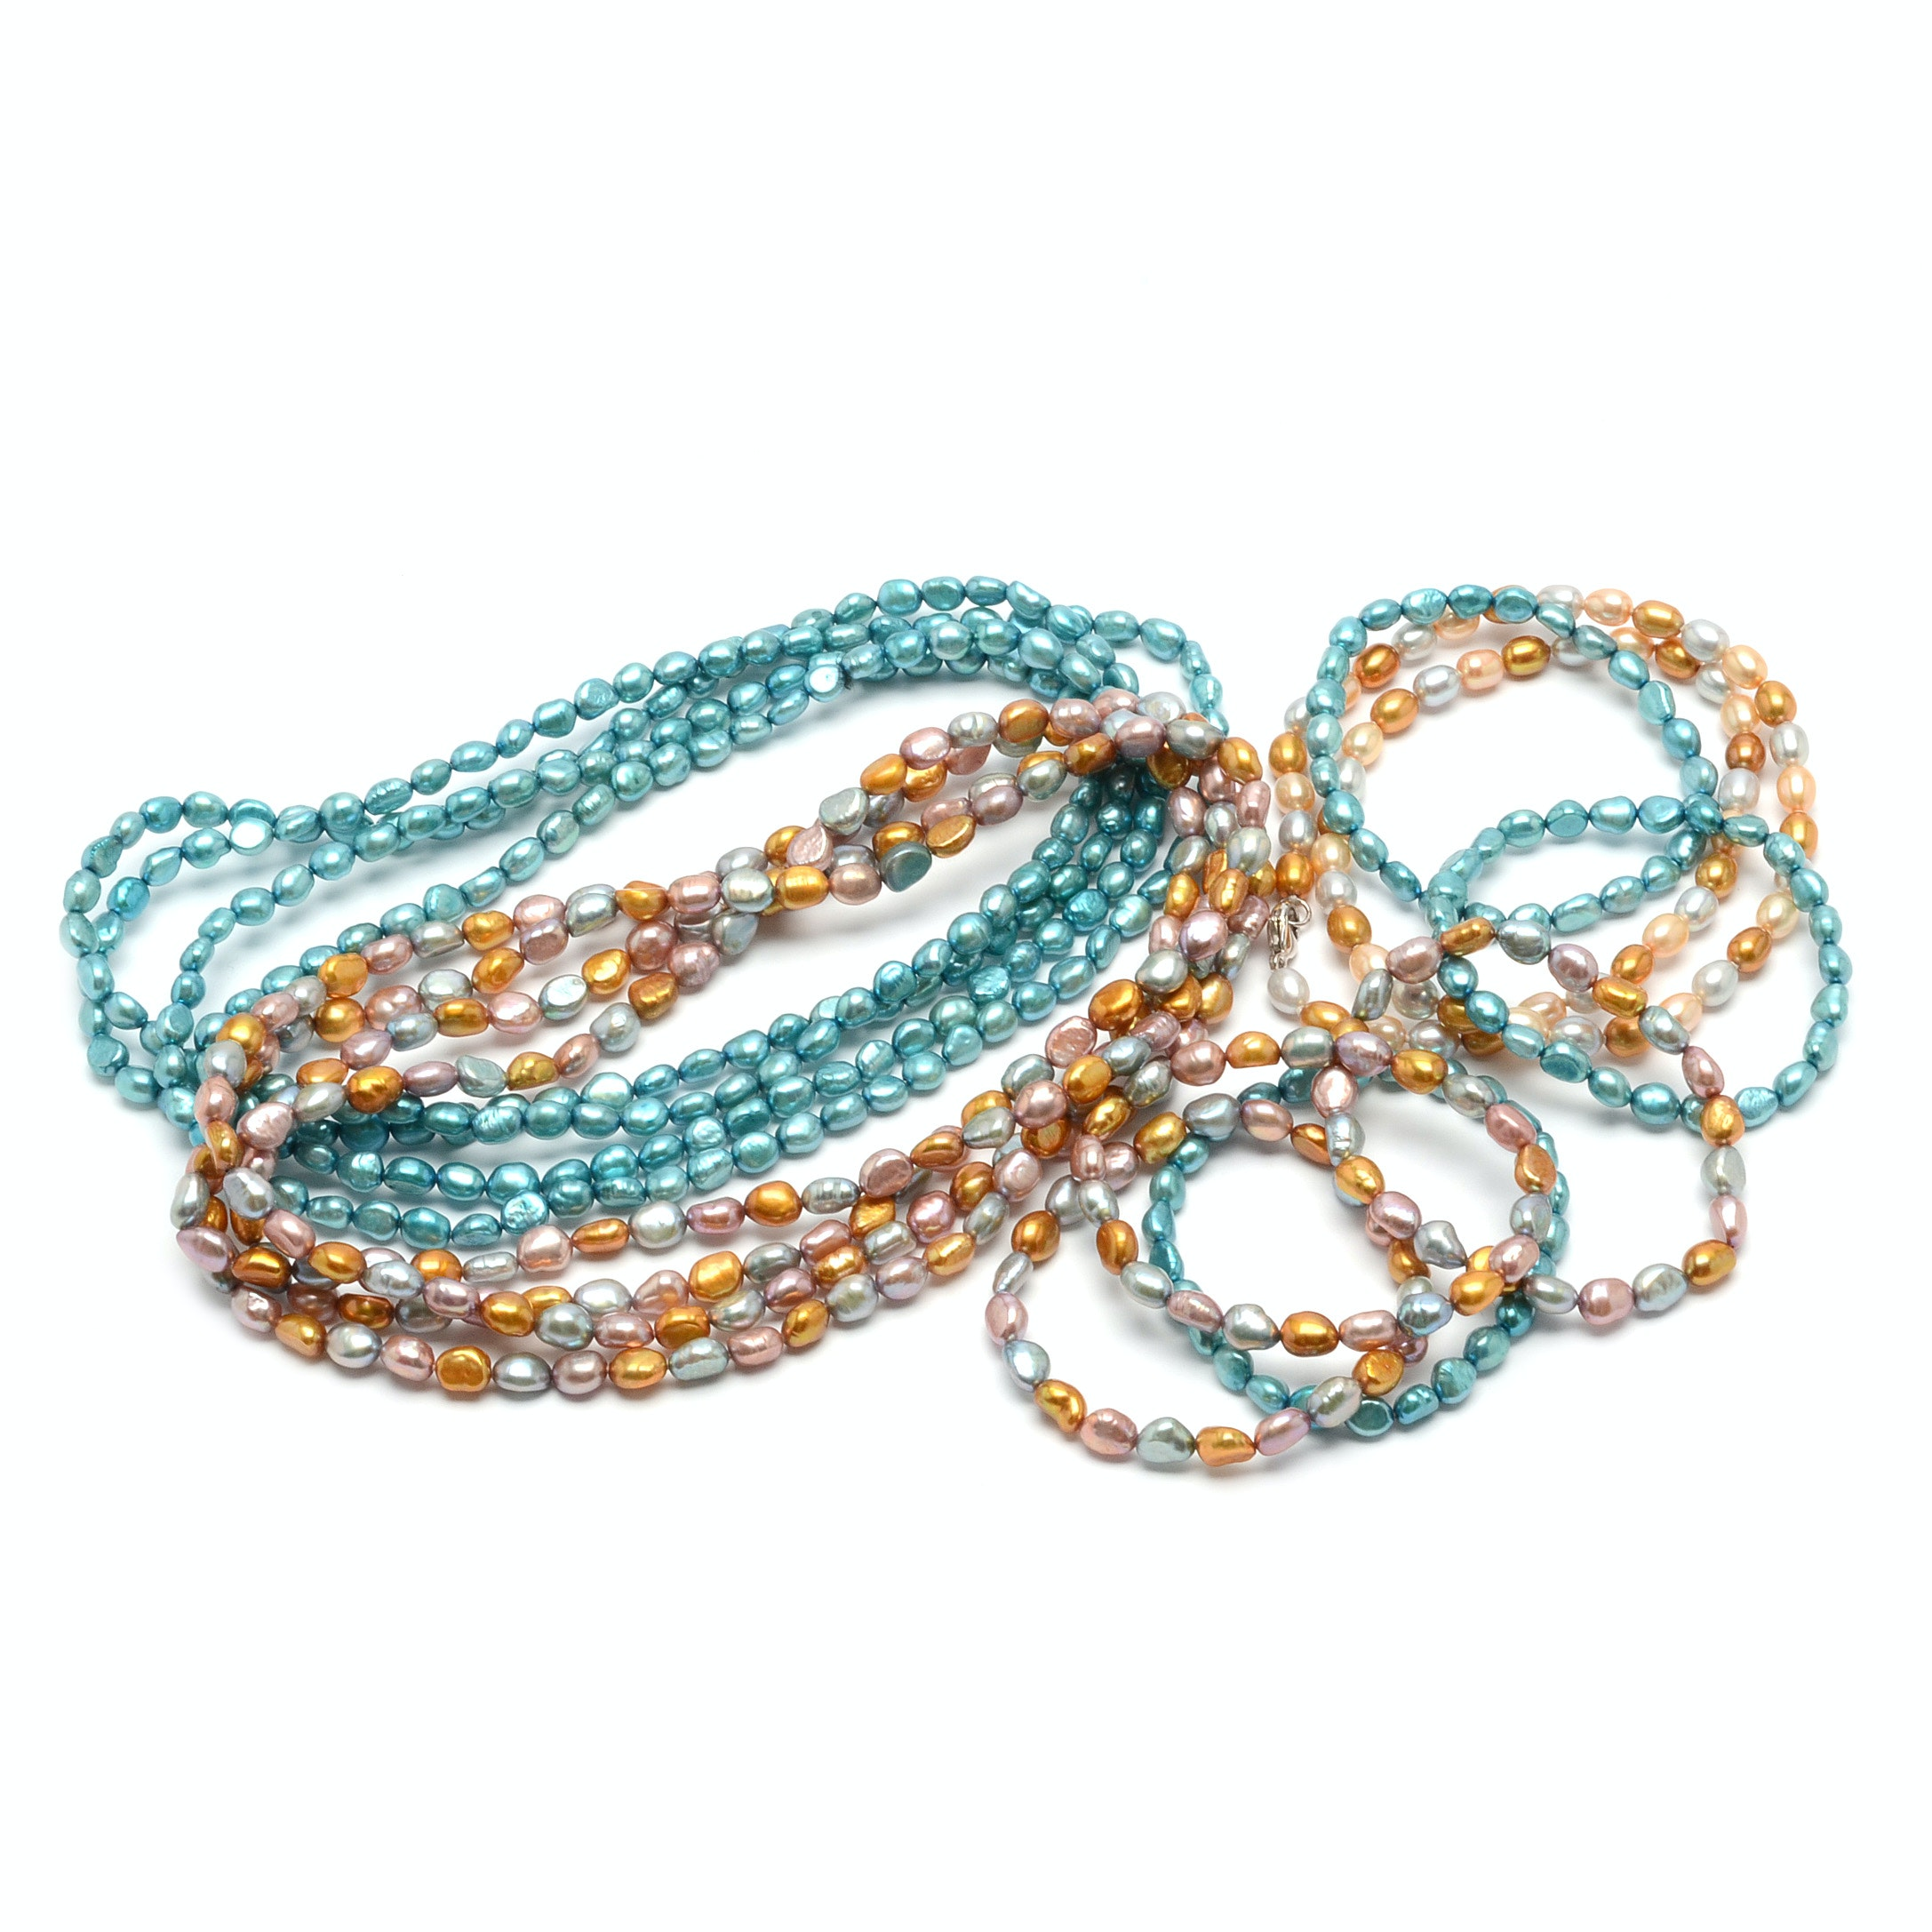 Assorted Dyed Cultured Pearl Necklaces and Bracelets, Including Honora